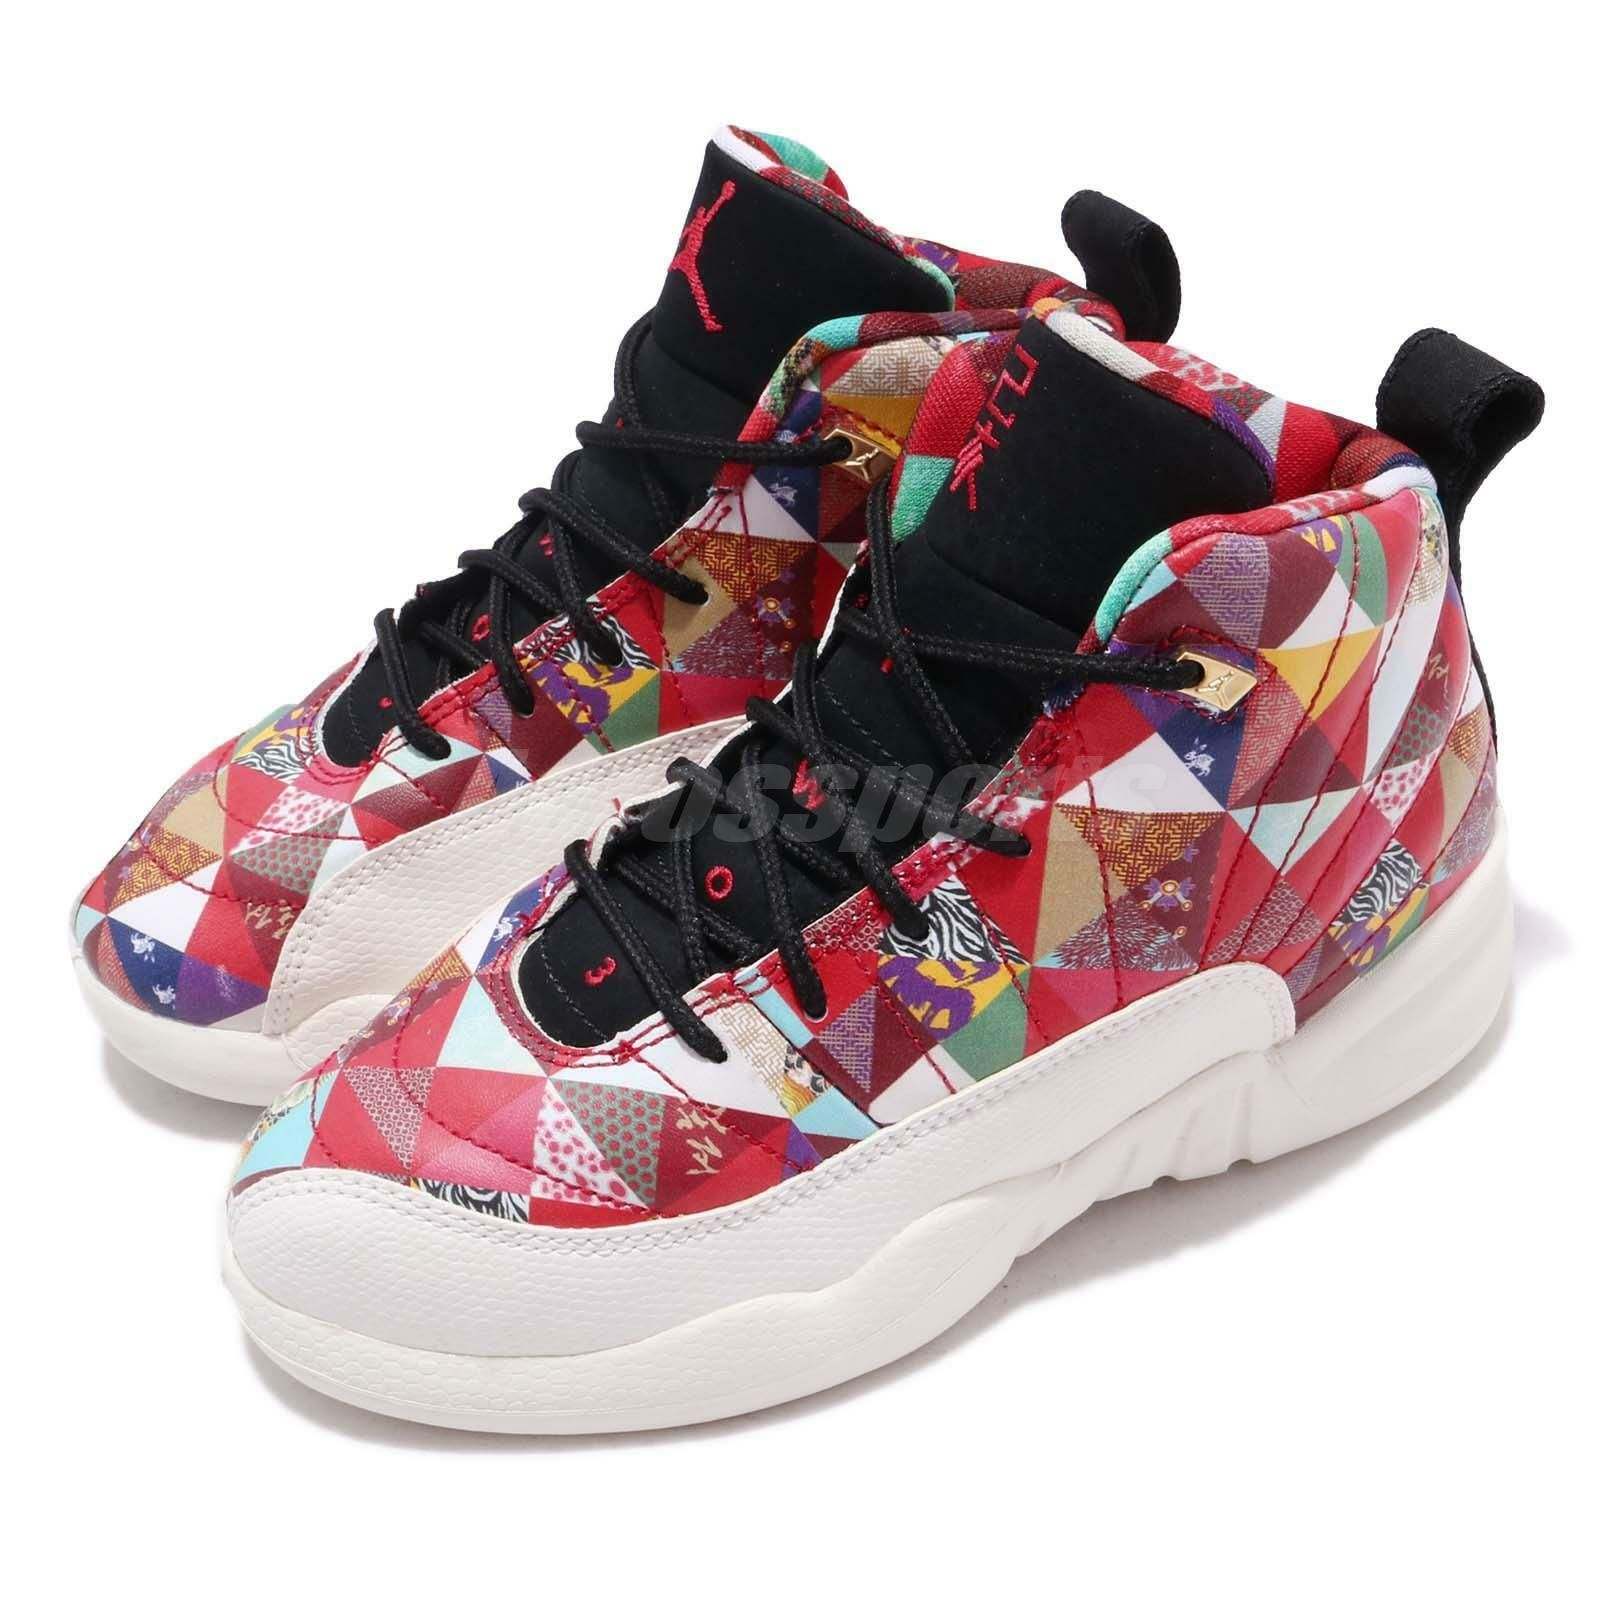 best service 4f513 0ab81 Nike Air Jordan 12 Retro CNY XII 2019 Chinese New Year Men Women Kids TD.  Find this Pin and ...